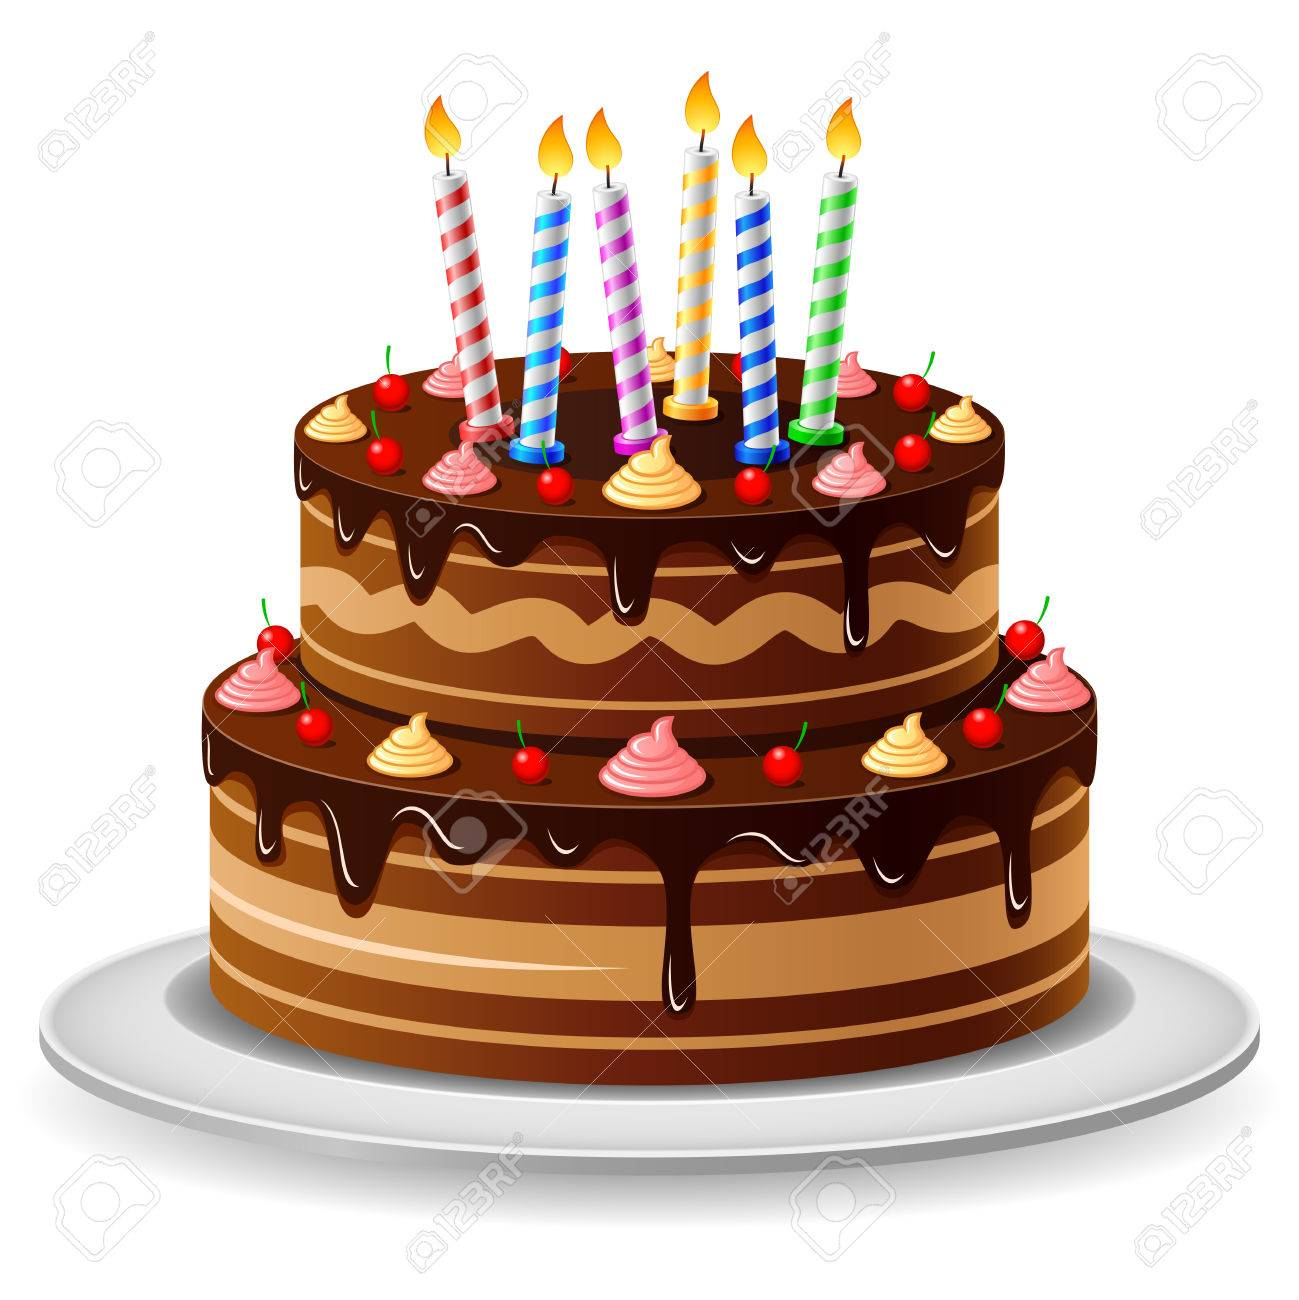 Fantastic Birthday Cake Royalty Free Cliparts Vectors And Stock Funny Birthday Cards Online Elaedamsfinfo